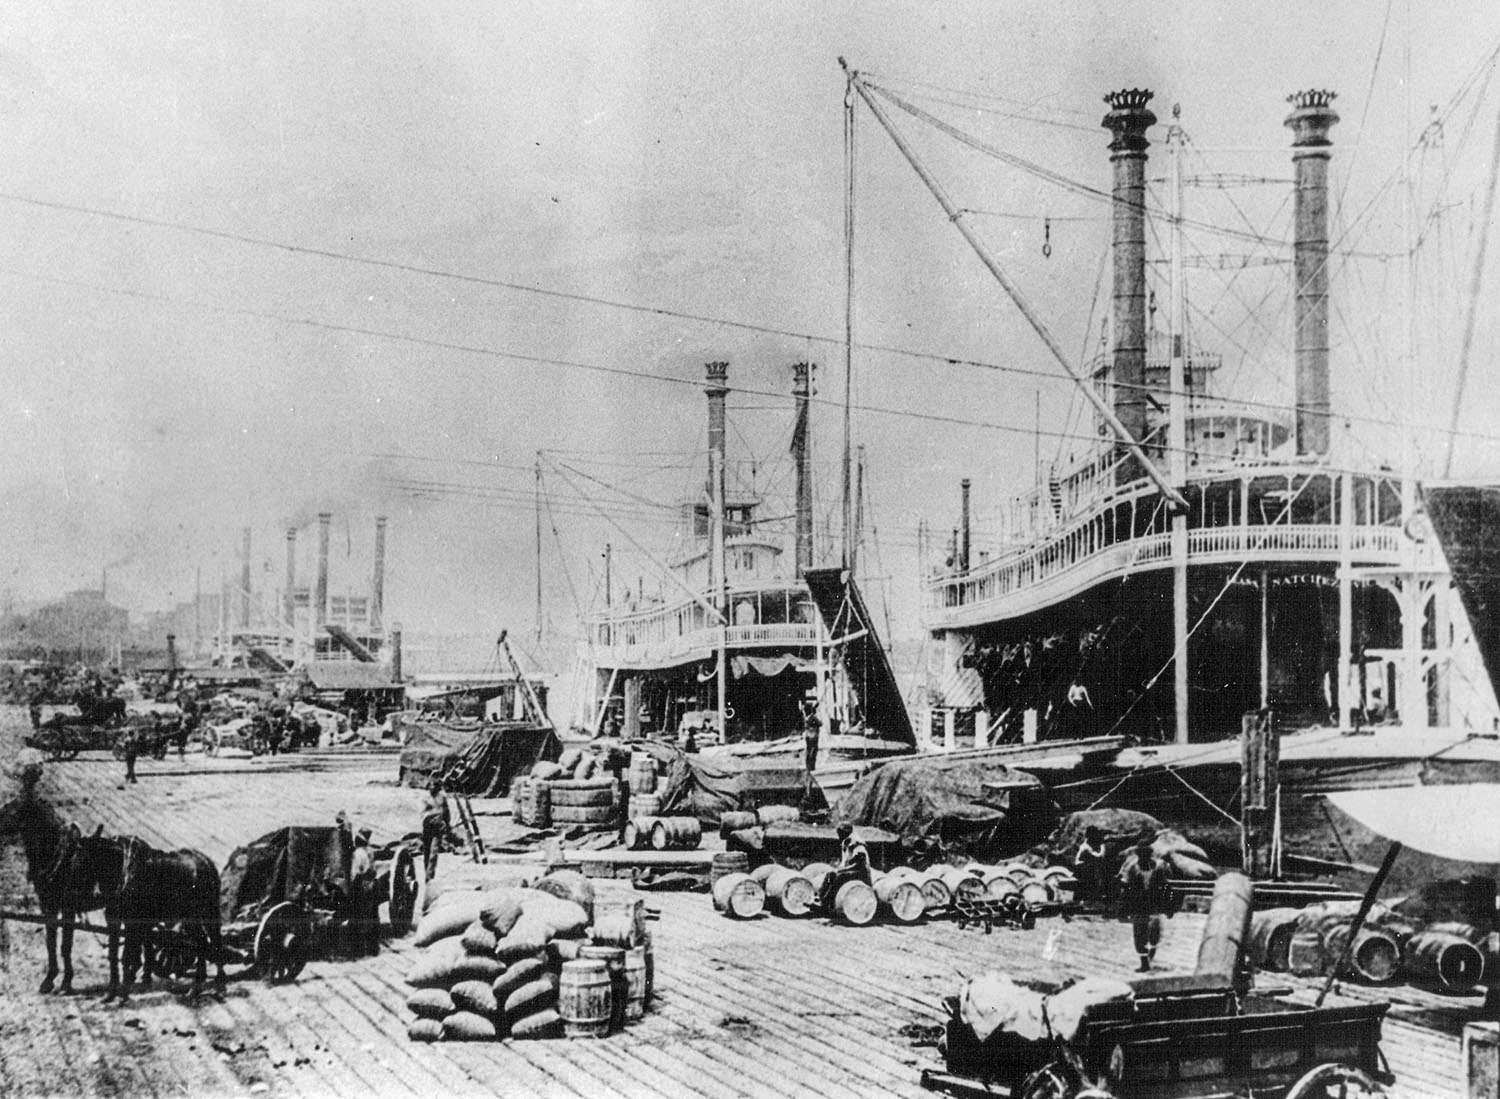 The New Orleans waterfront in 1892. (Keith Norrington collection)